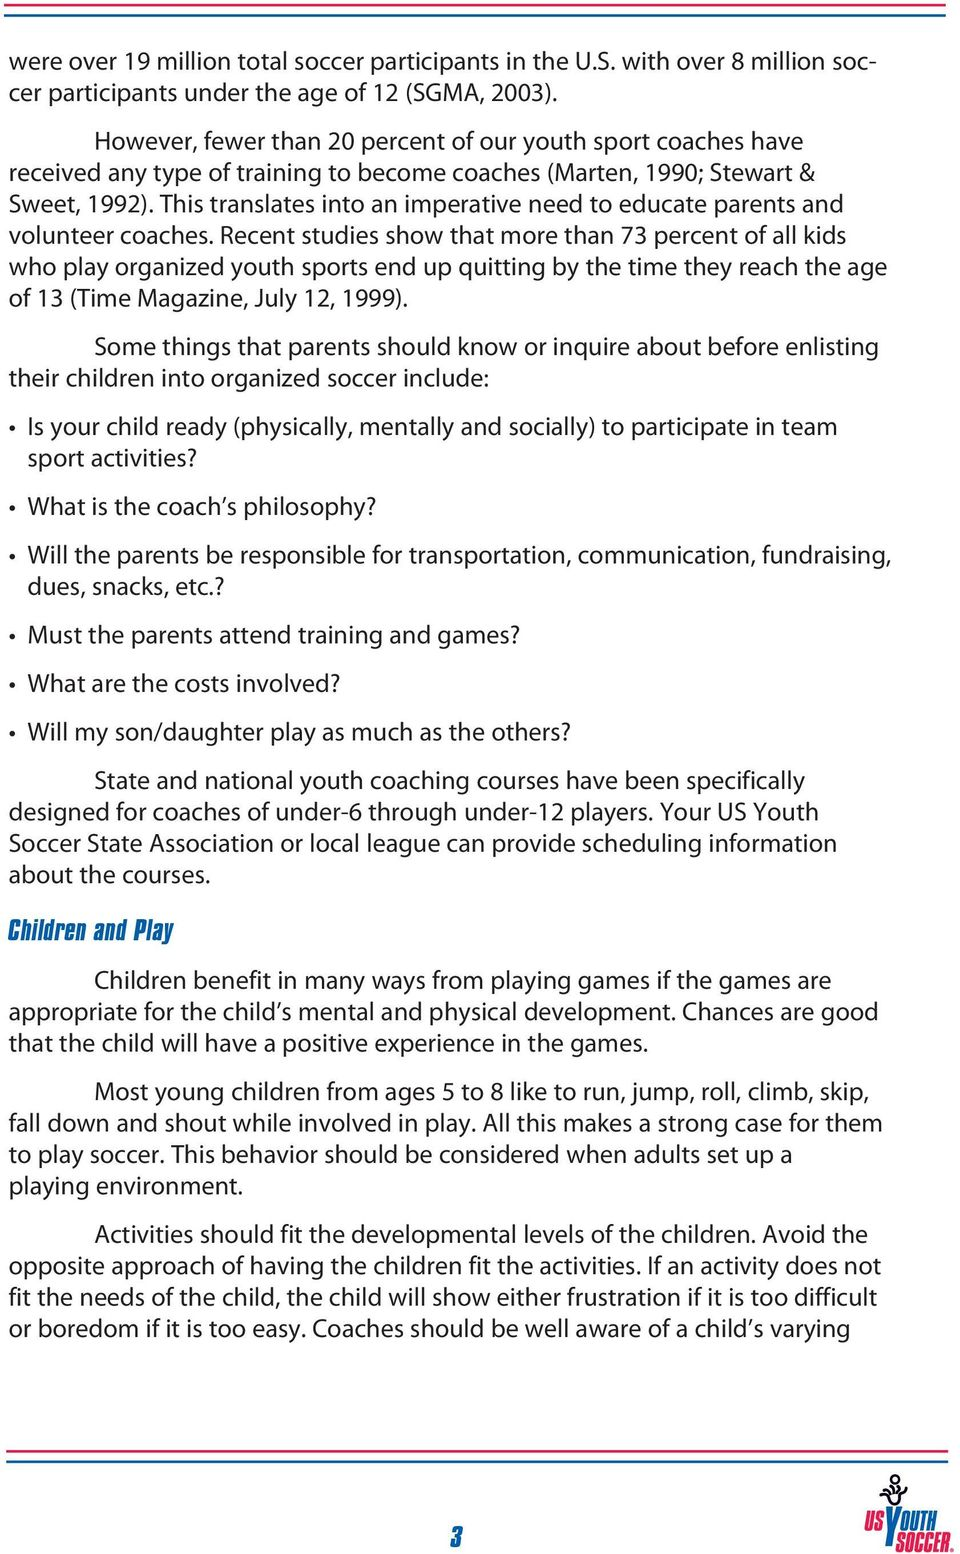 This translates into an imperative need to educate parents and volunteer coaches.